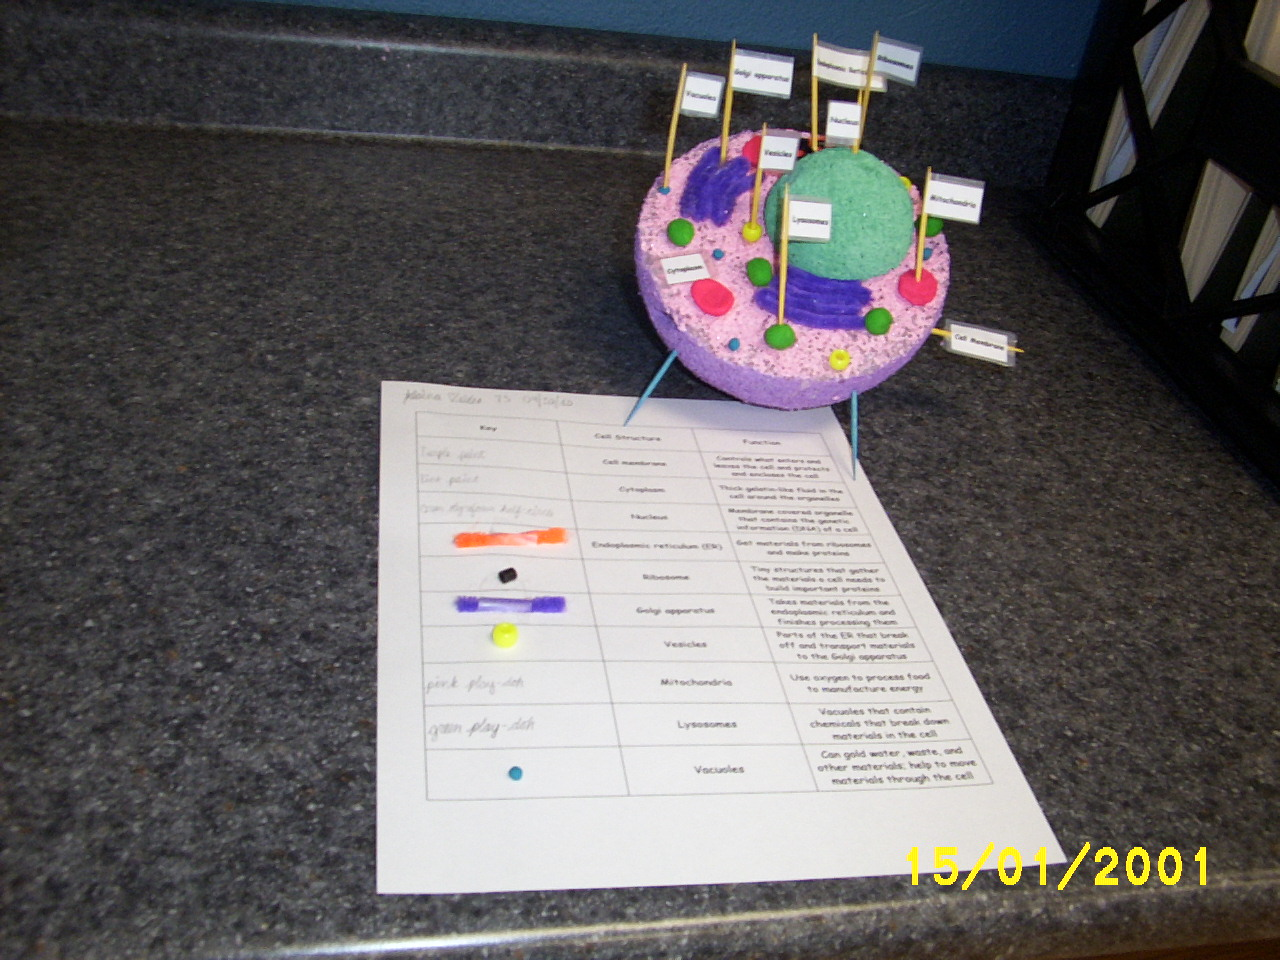 7Th Grade Science Cell Project http://stpvogelweid.edublogs.org/2010/11/04/the-7th-grade-science-project-on-plant-and-animal-cells/